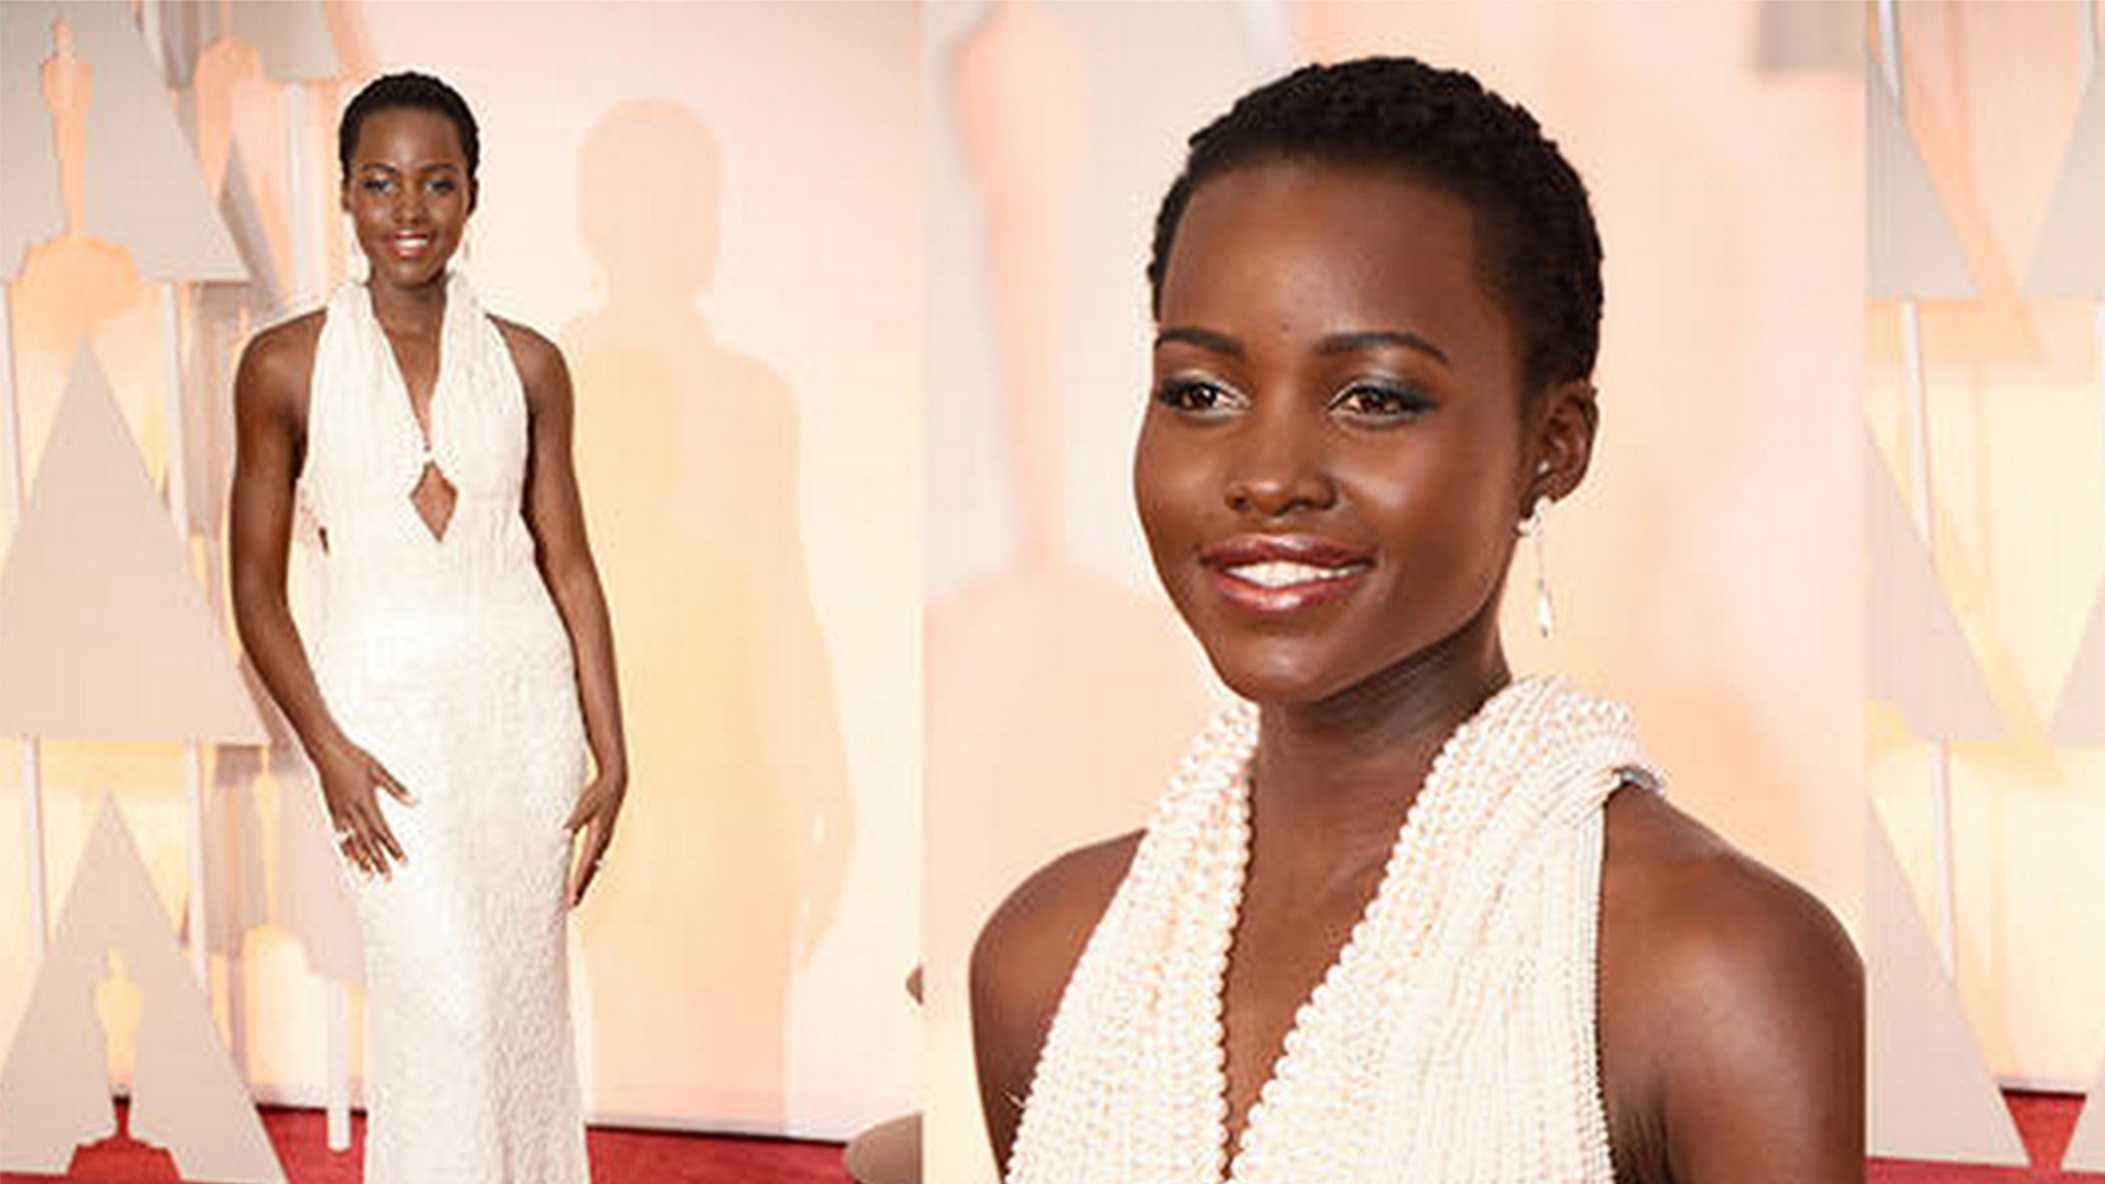 The pearl dress worn by Lupita Nyong'o Sunday night was stolen.